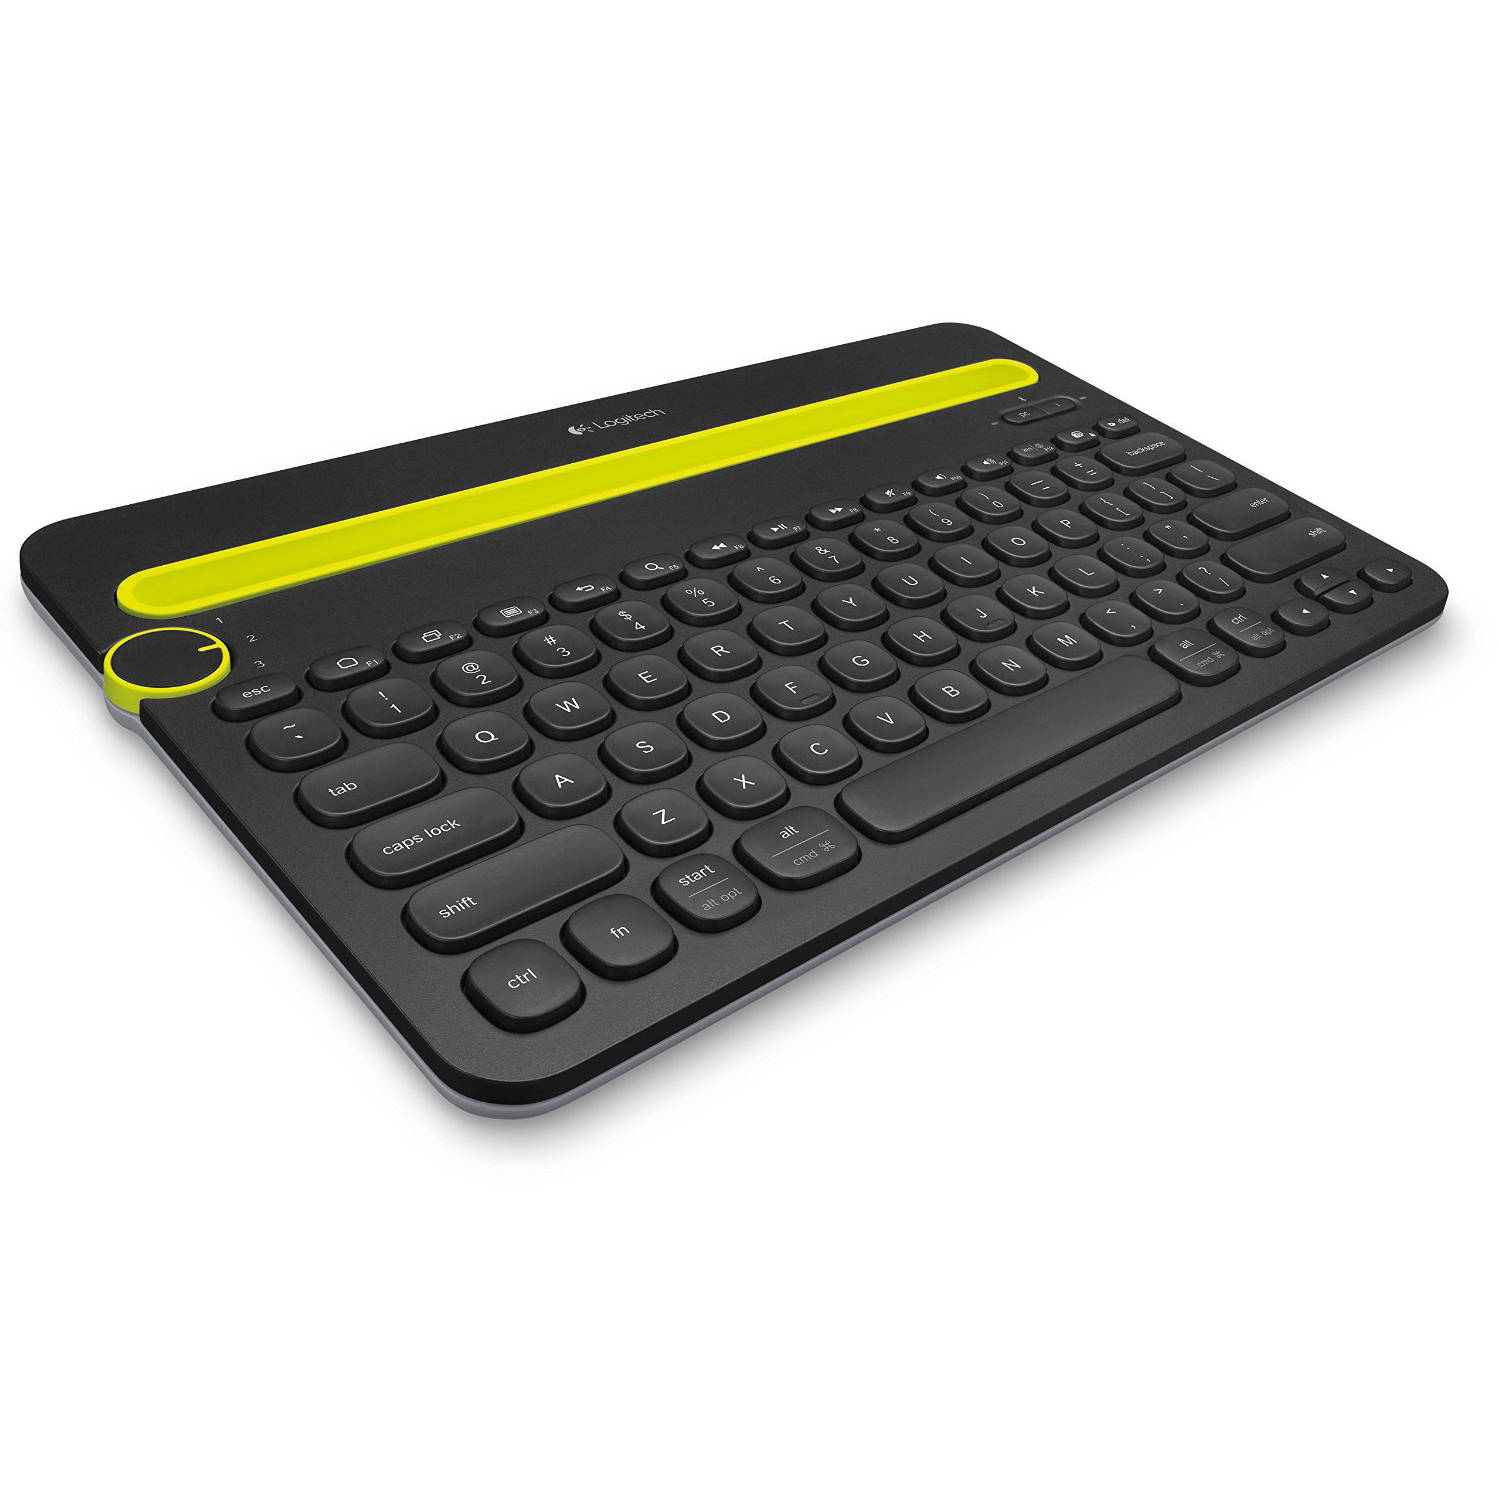 Refurbished Logitech Bluetooth Multi-Device Keyboard K480 for Computers, Tablets and Smartphones, Black